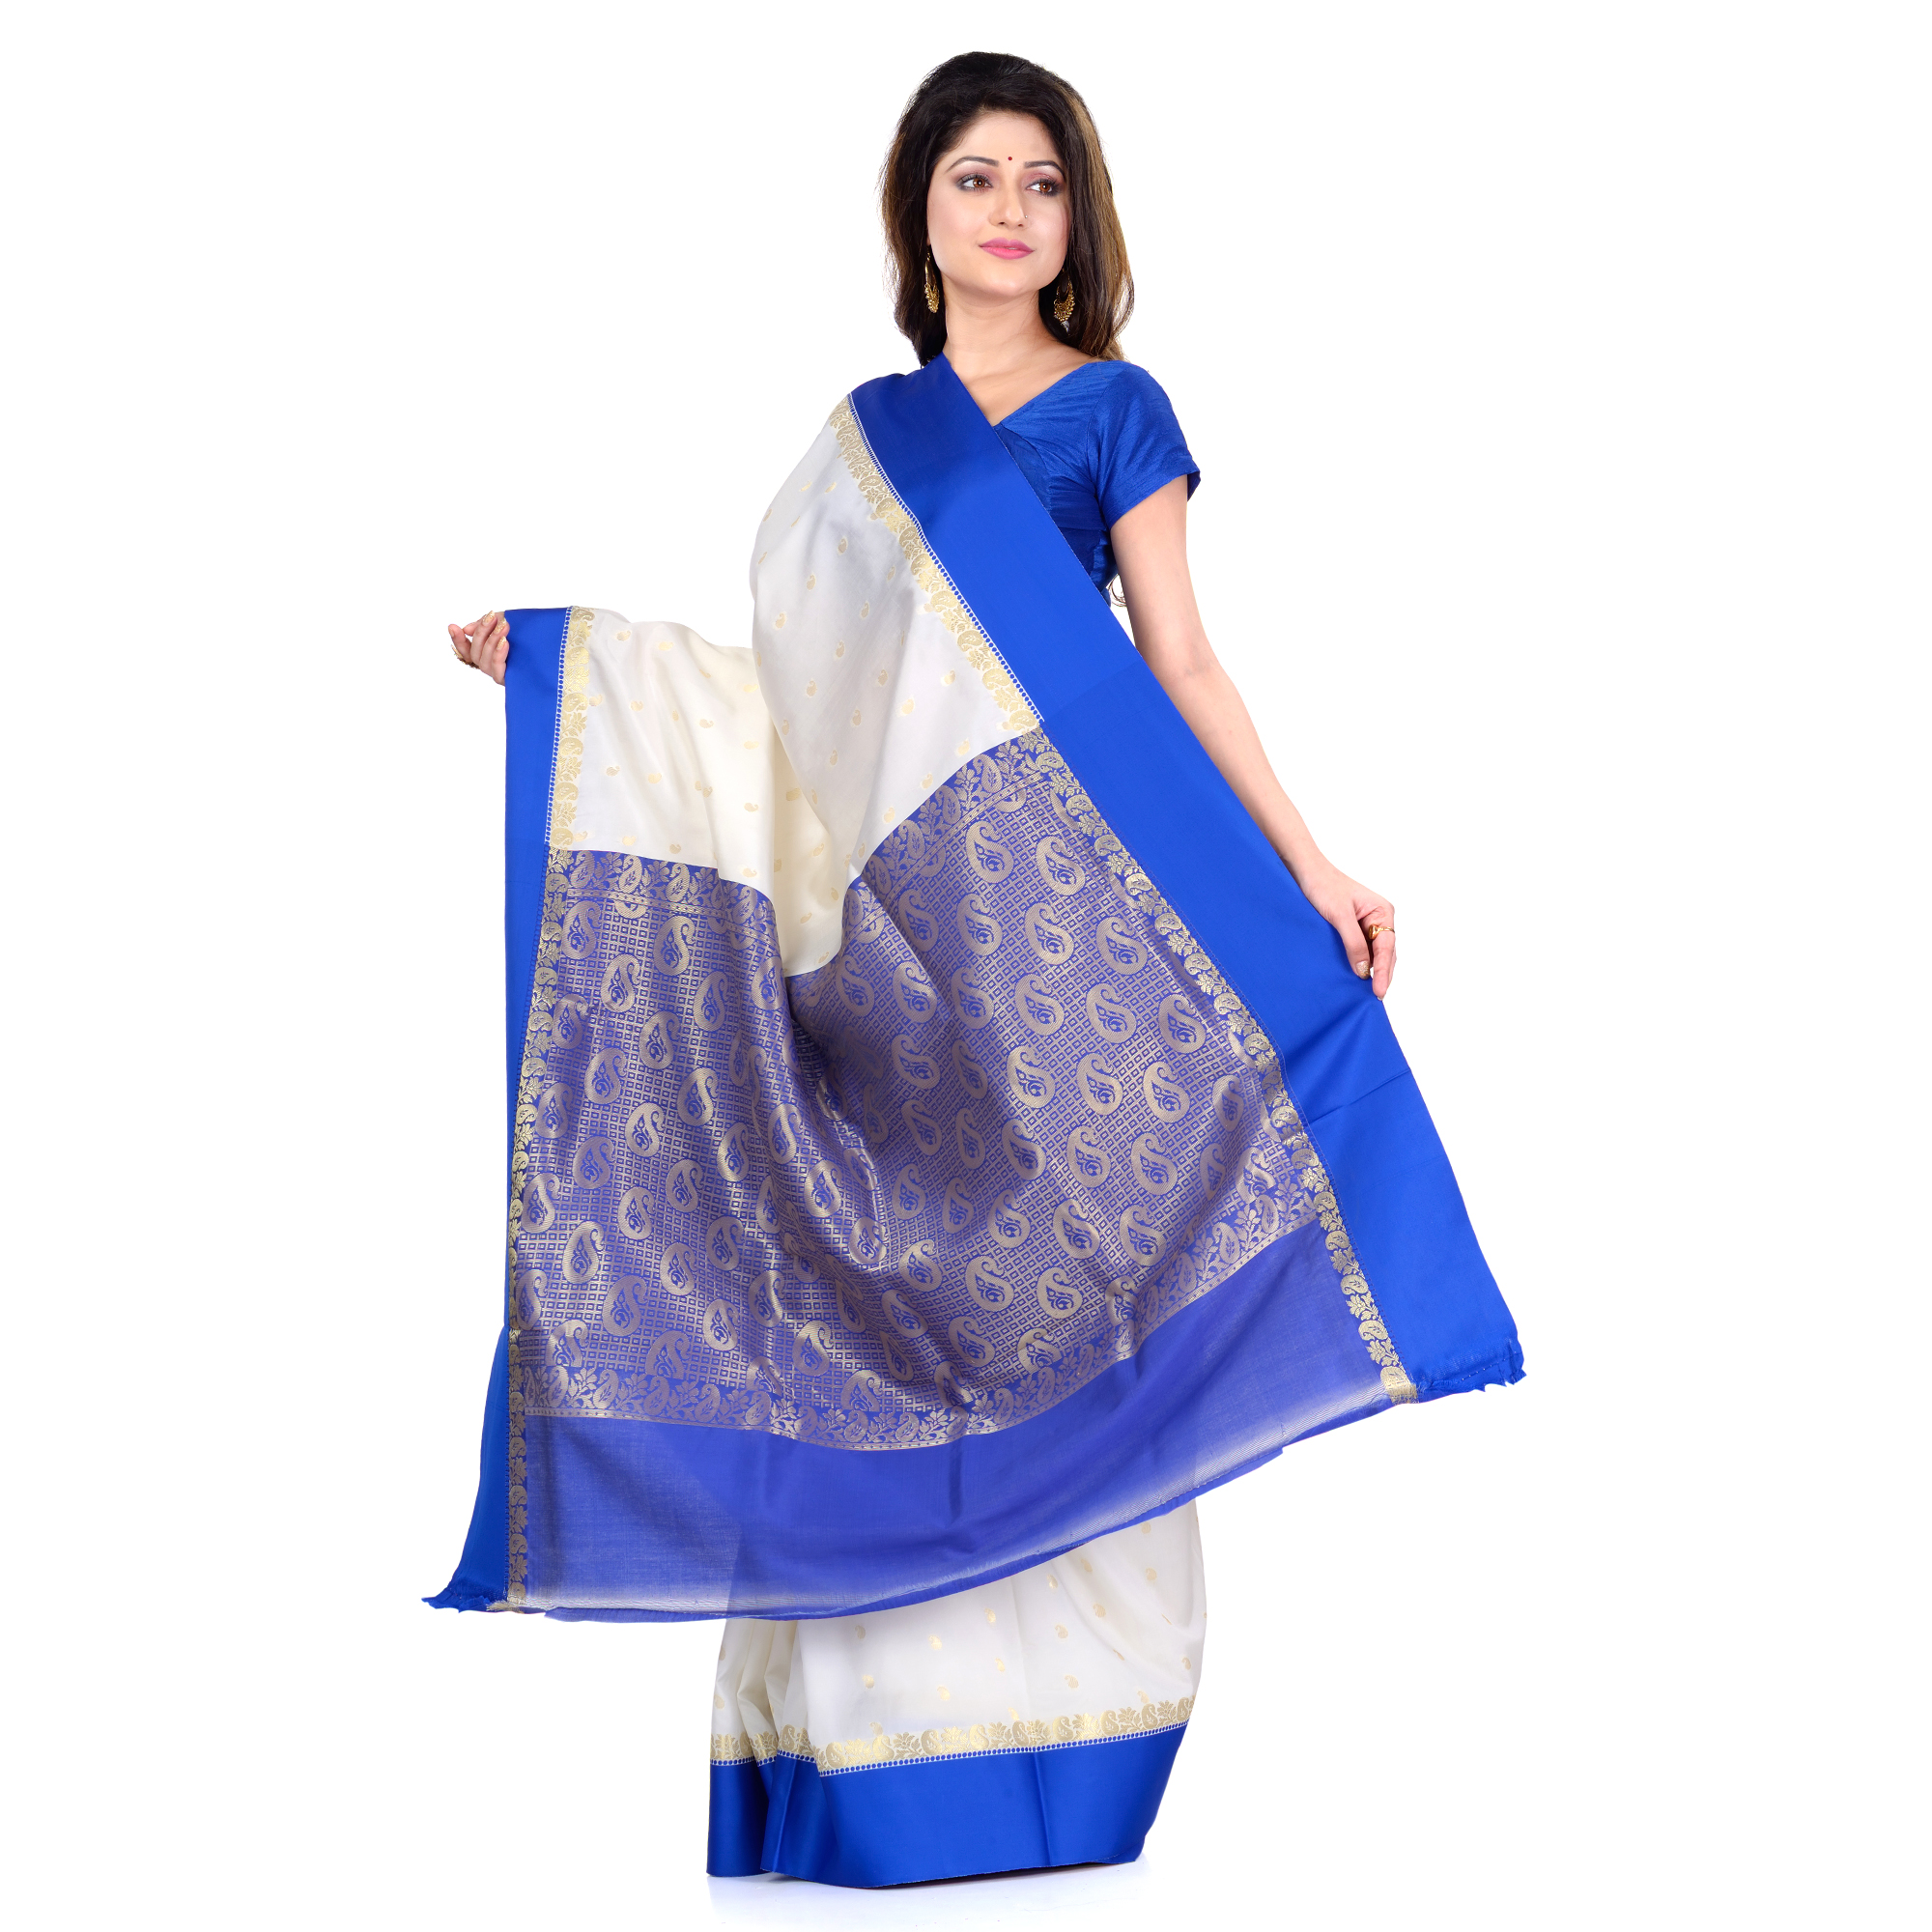 DESH BIDESH Women`s Bengal Premium Art Silk Saree Fine Smooth Original Art Silk Designed Saree With Blouse Pcs. Handmade Exclusive Flower with Kalka with Whole Body Design (White and Blue)